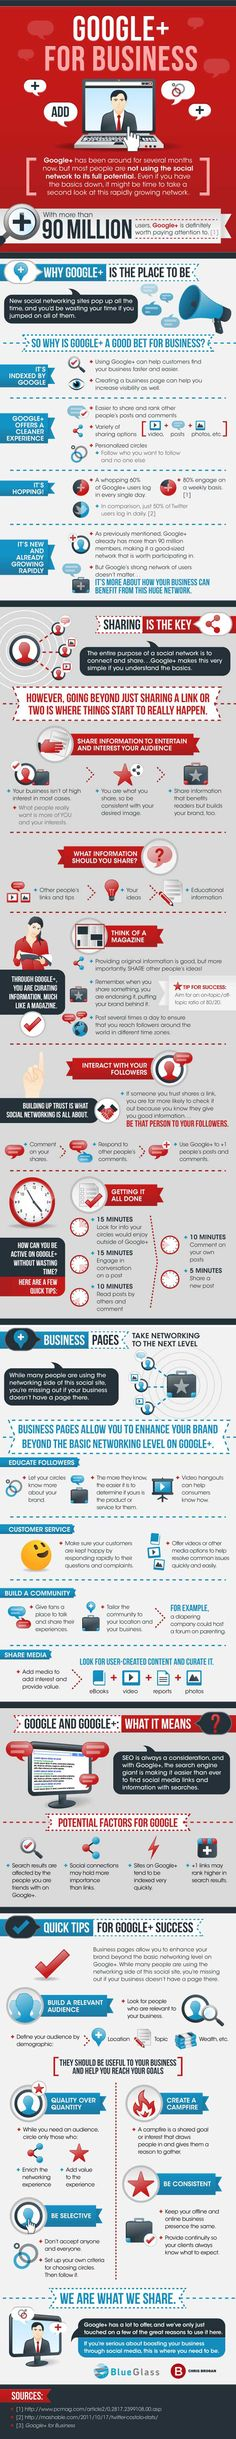 Google + for business. I've been hearing this a lot lately and now I've seen an infographic I'm convinced...